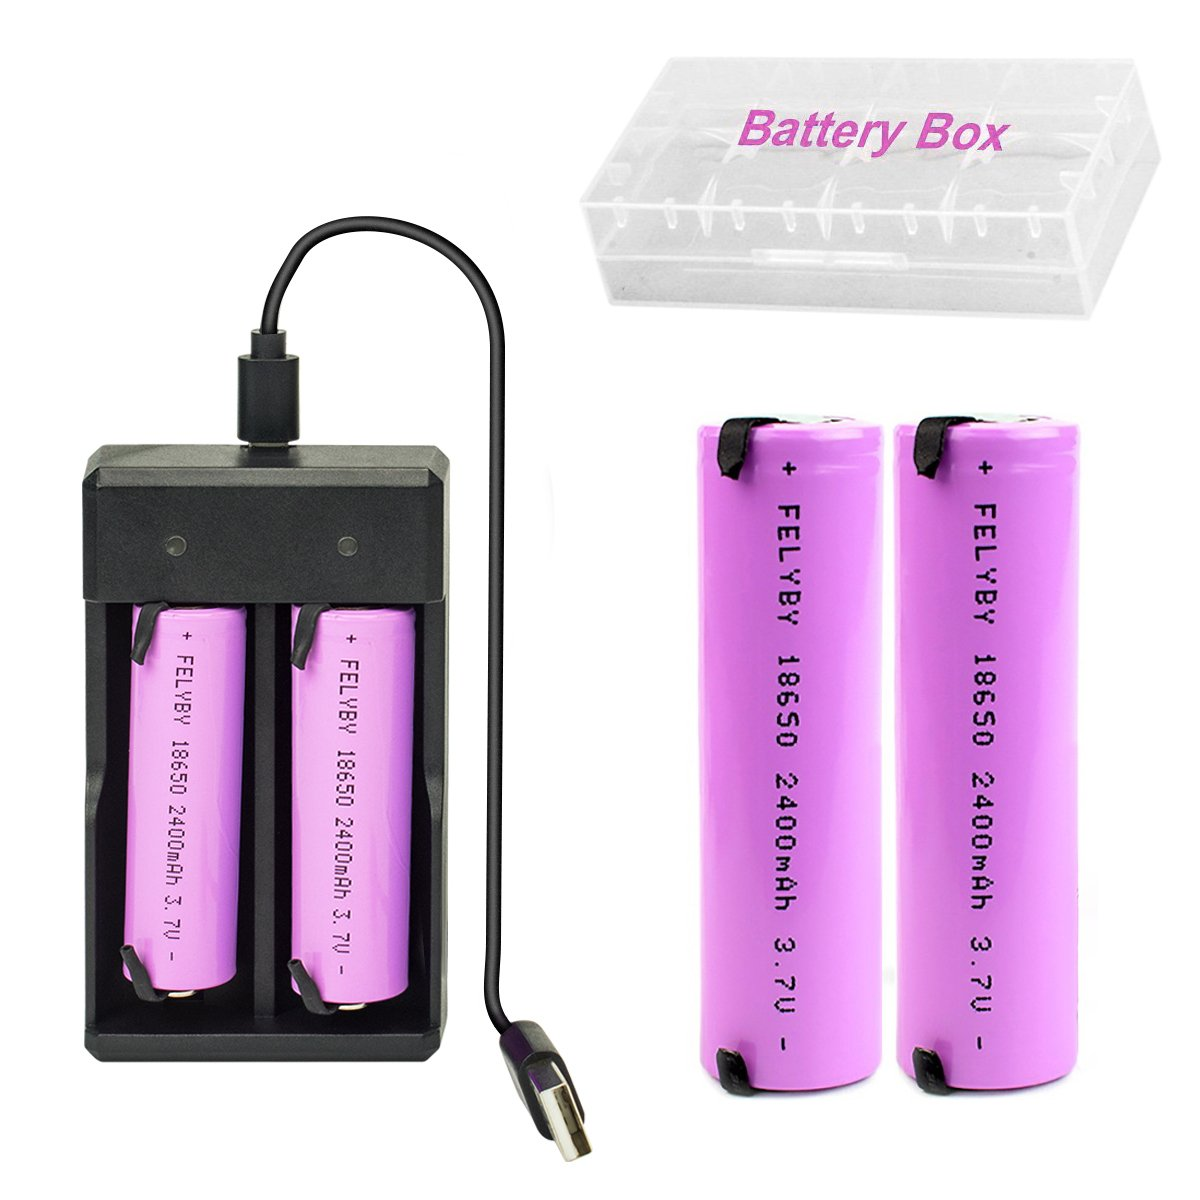 18650 3.7V Lithium ion Rechargeable Batteries Button Top Pink 2 Packs and Smart Wired 18650 Li-ion Battery Charger (2pack PI-Charger)